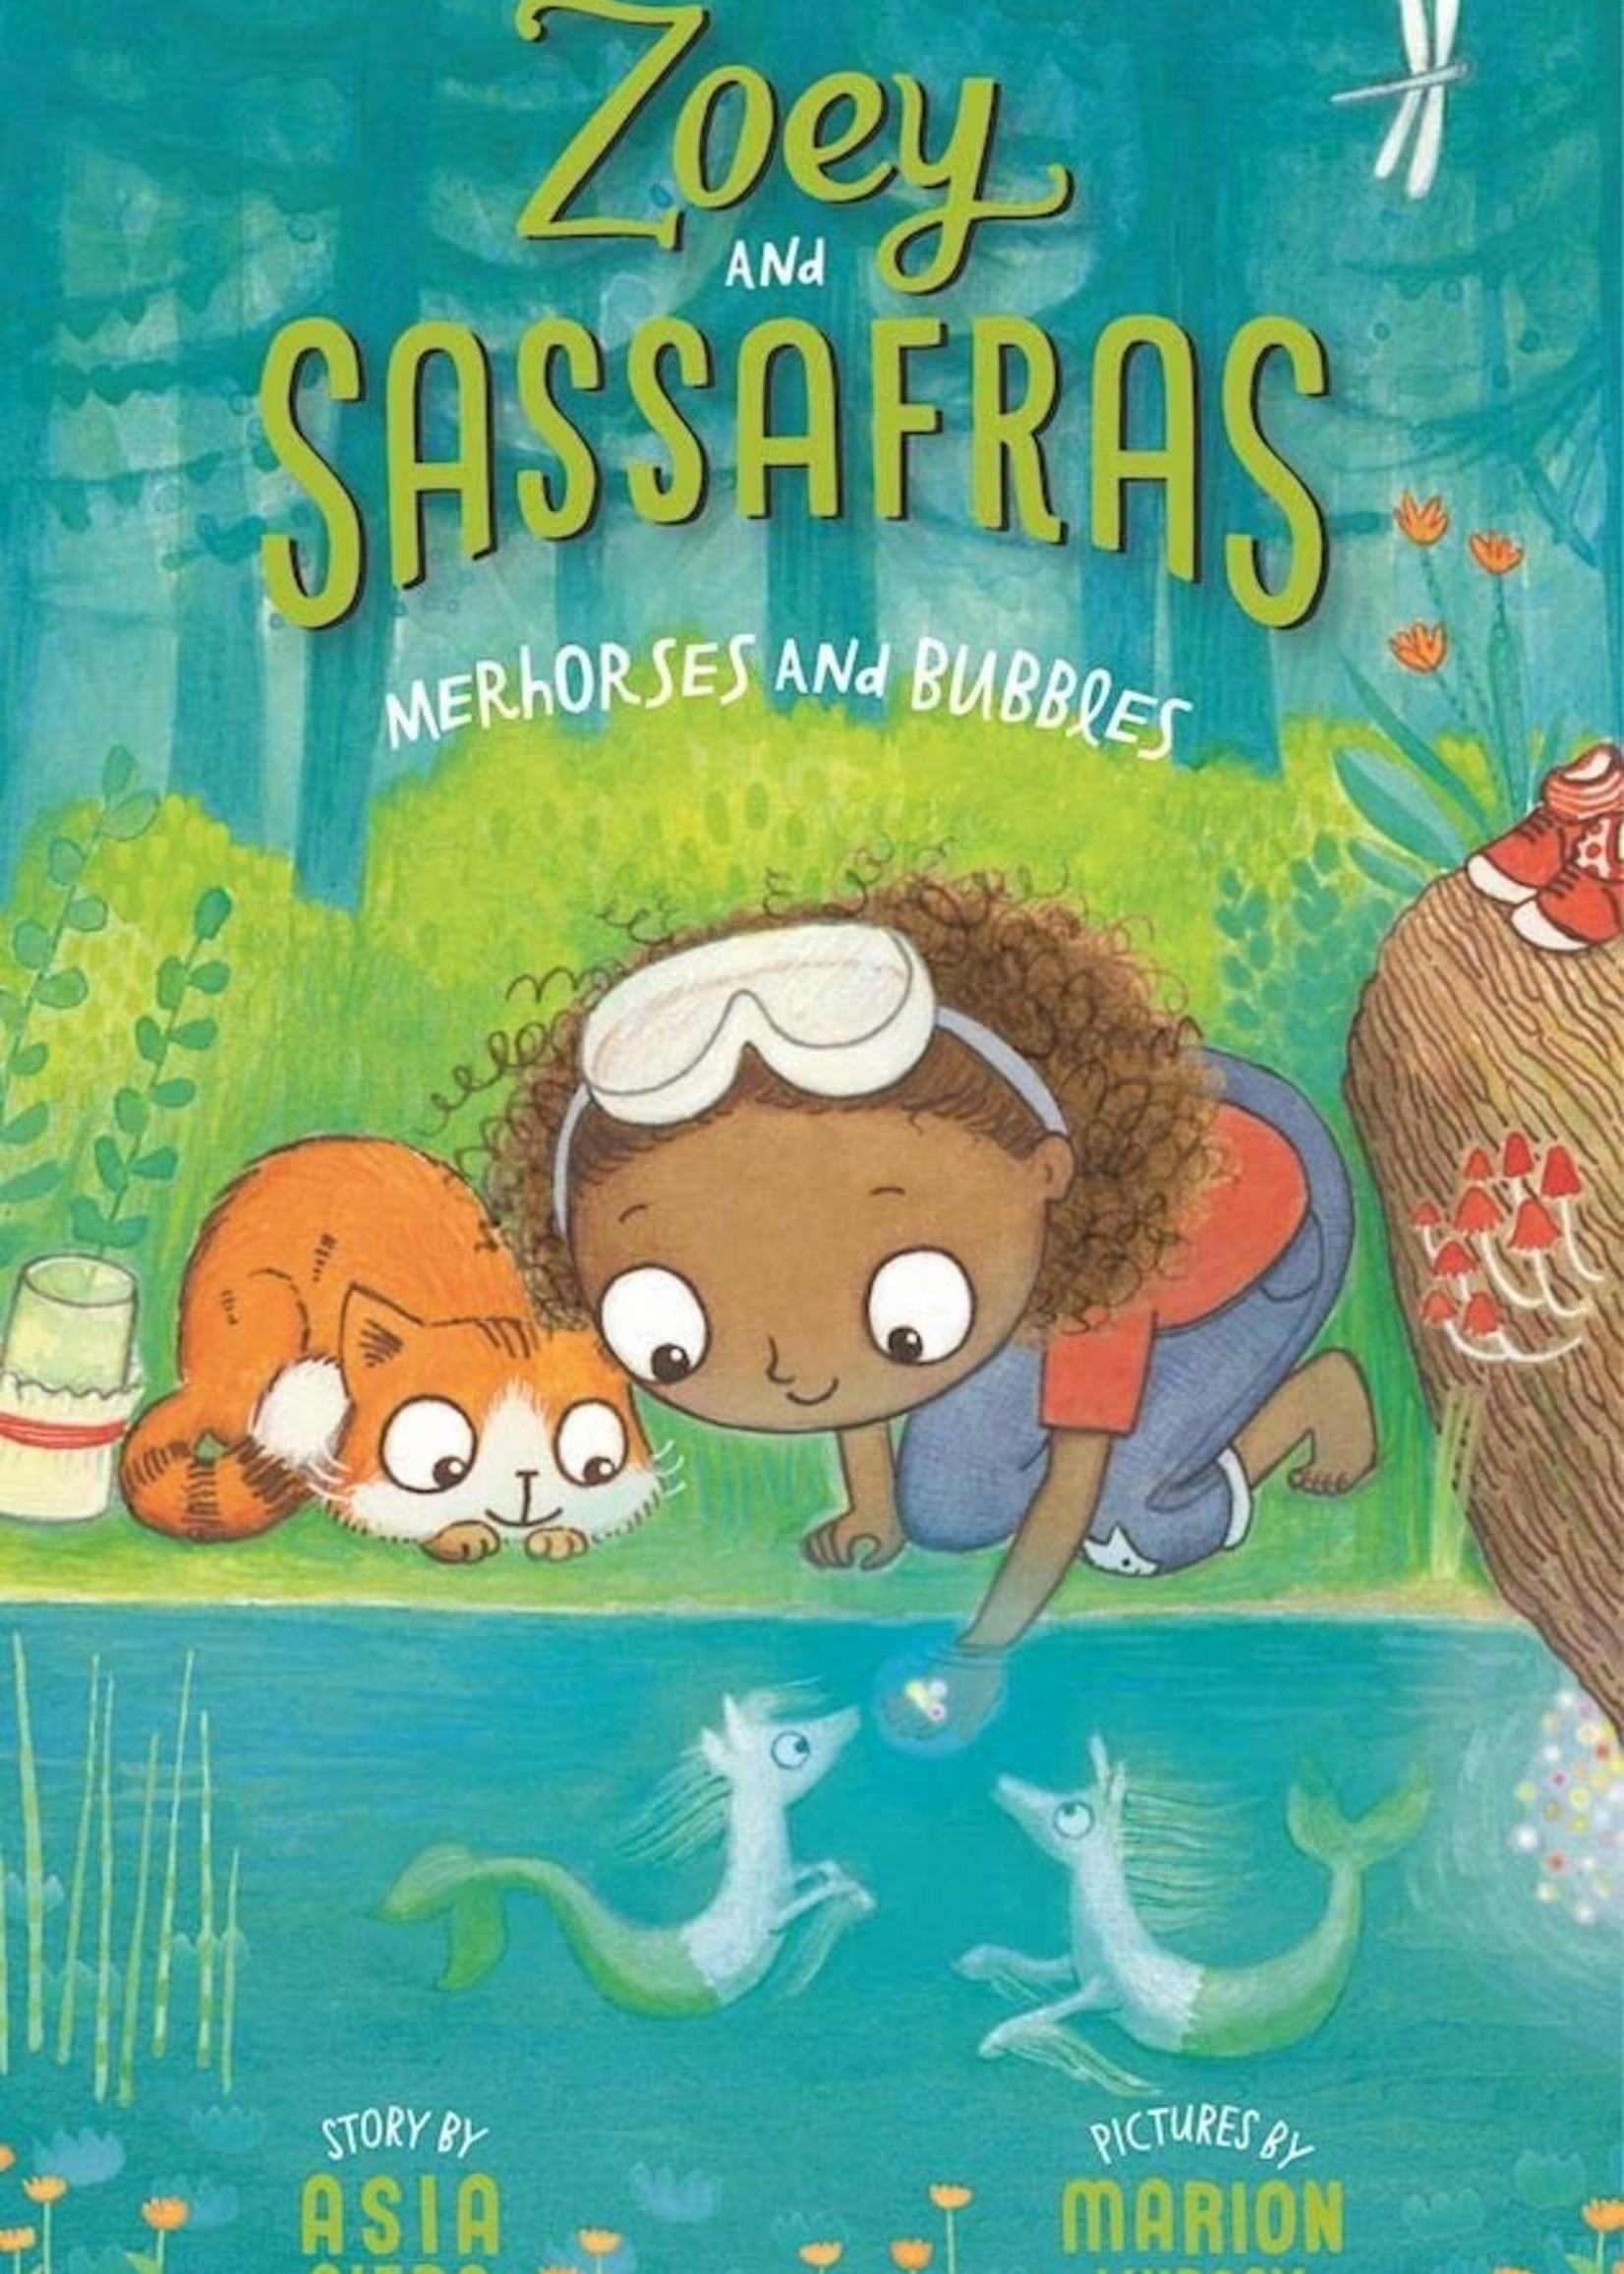 Zoey and Sassafras #03, Merhorses and Bubbles - Paperback